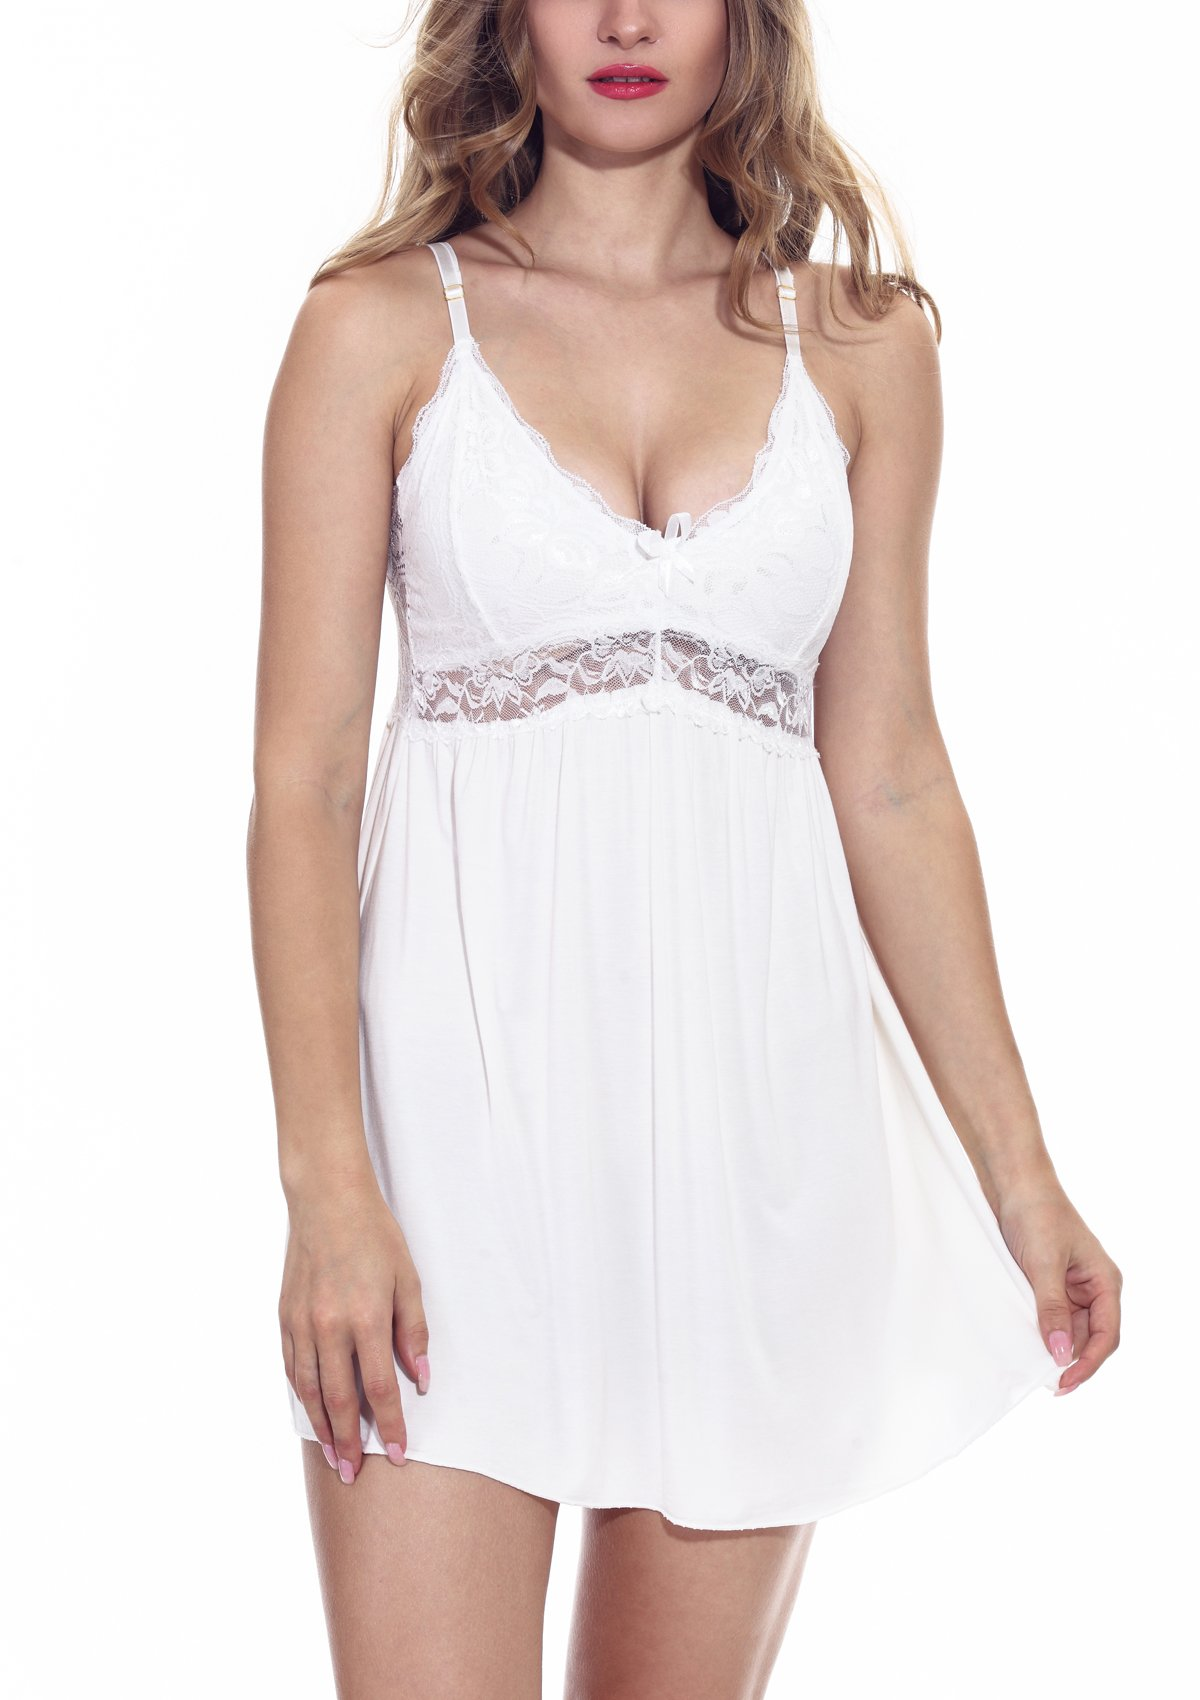 KANILU Women's Sexy Sleepwear Slip Nightwear Lace Backless Nightgown